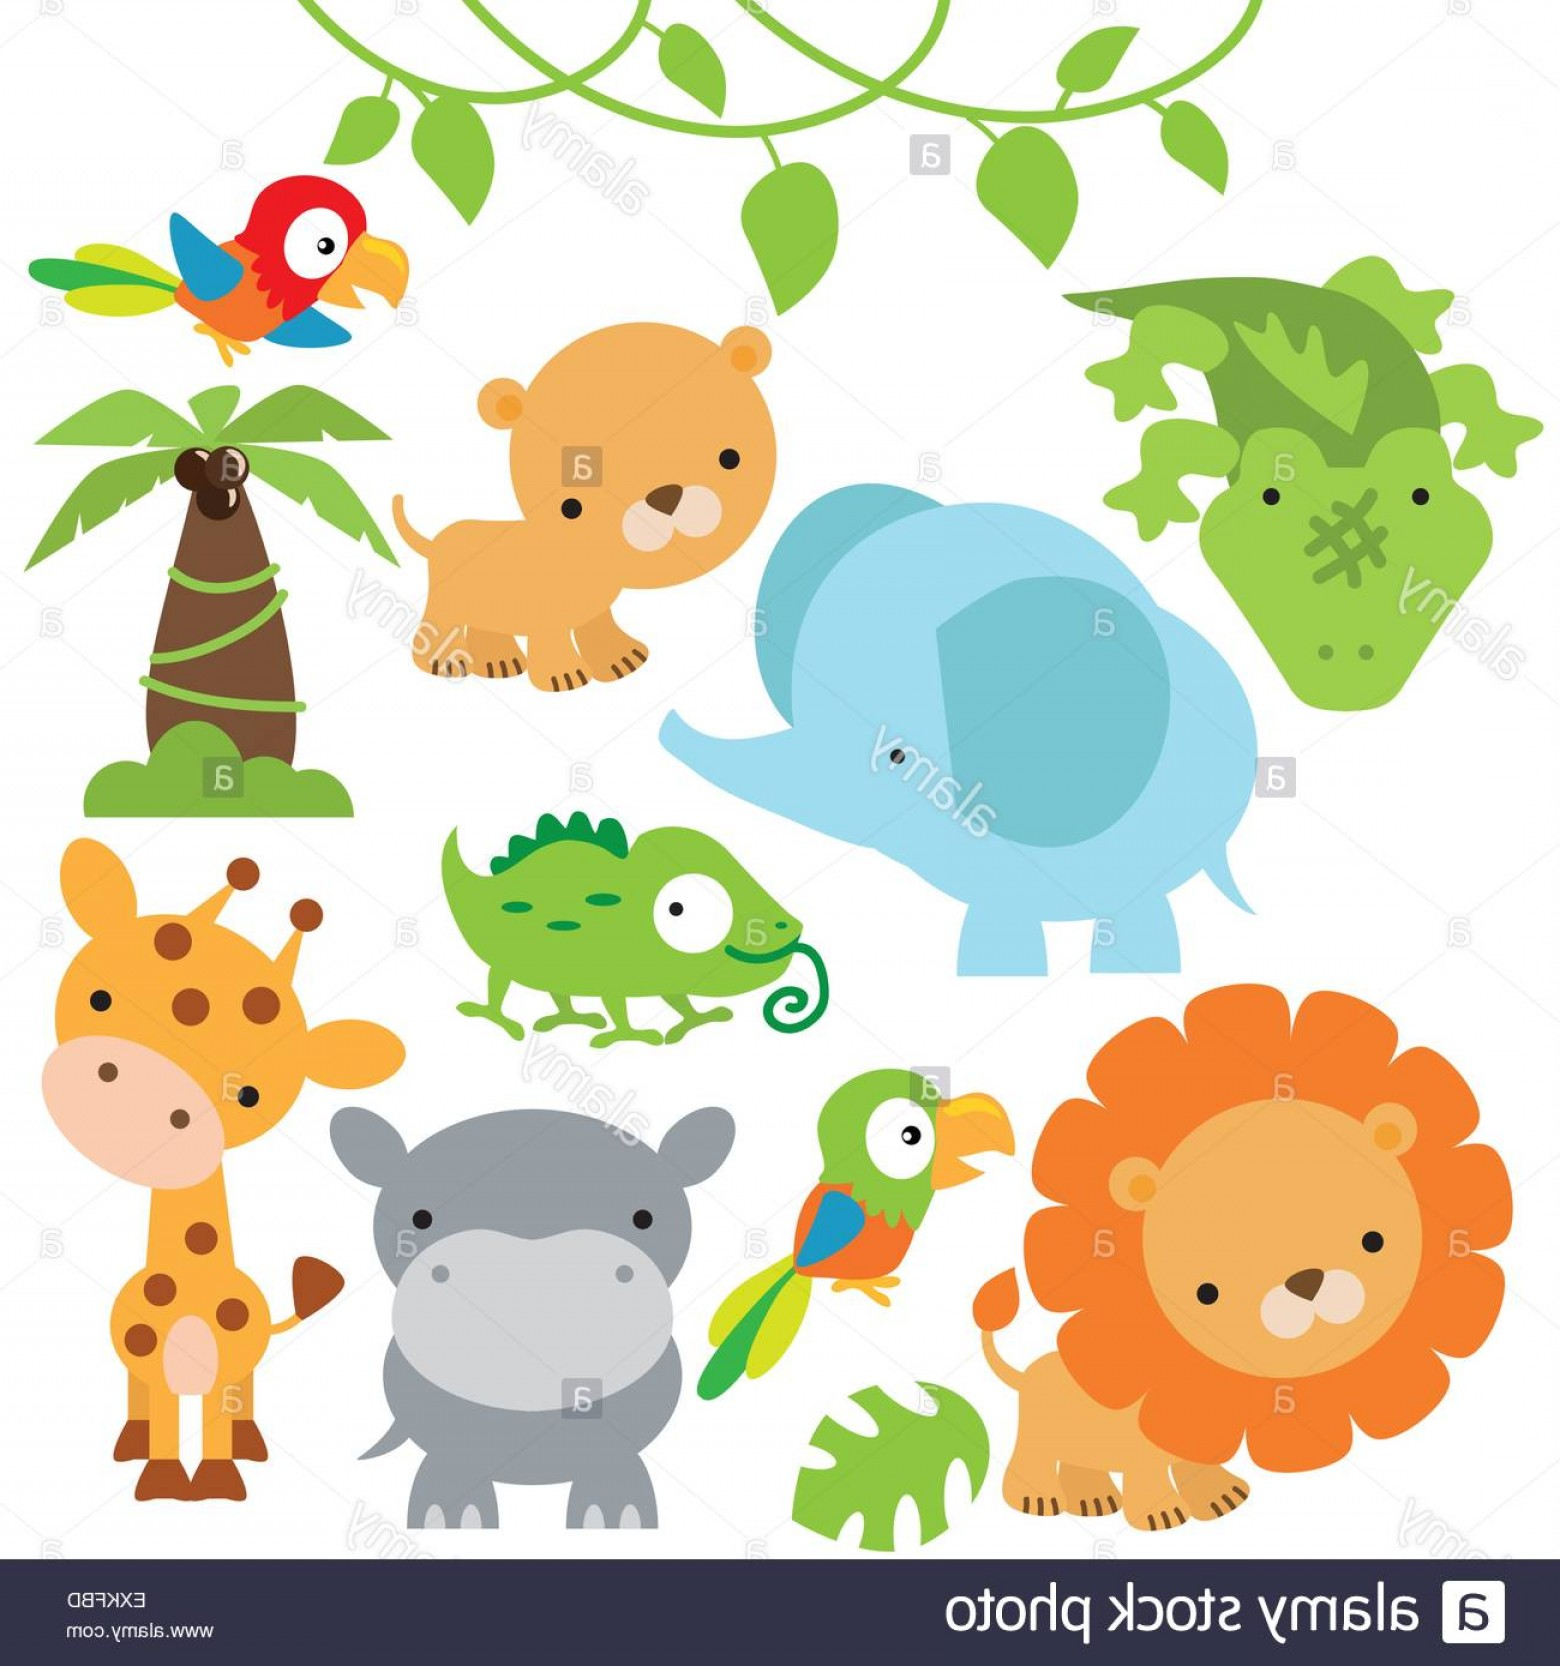 Jungle Animals Clip Art Vector: Stock Photo Lion Lioness Elephant Parrot Palm Tree Cute Animal Jungle Animal Funny